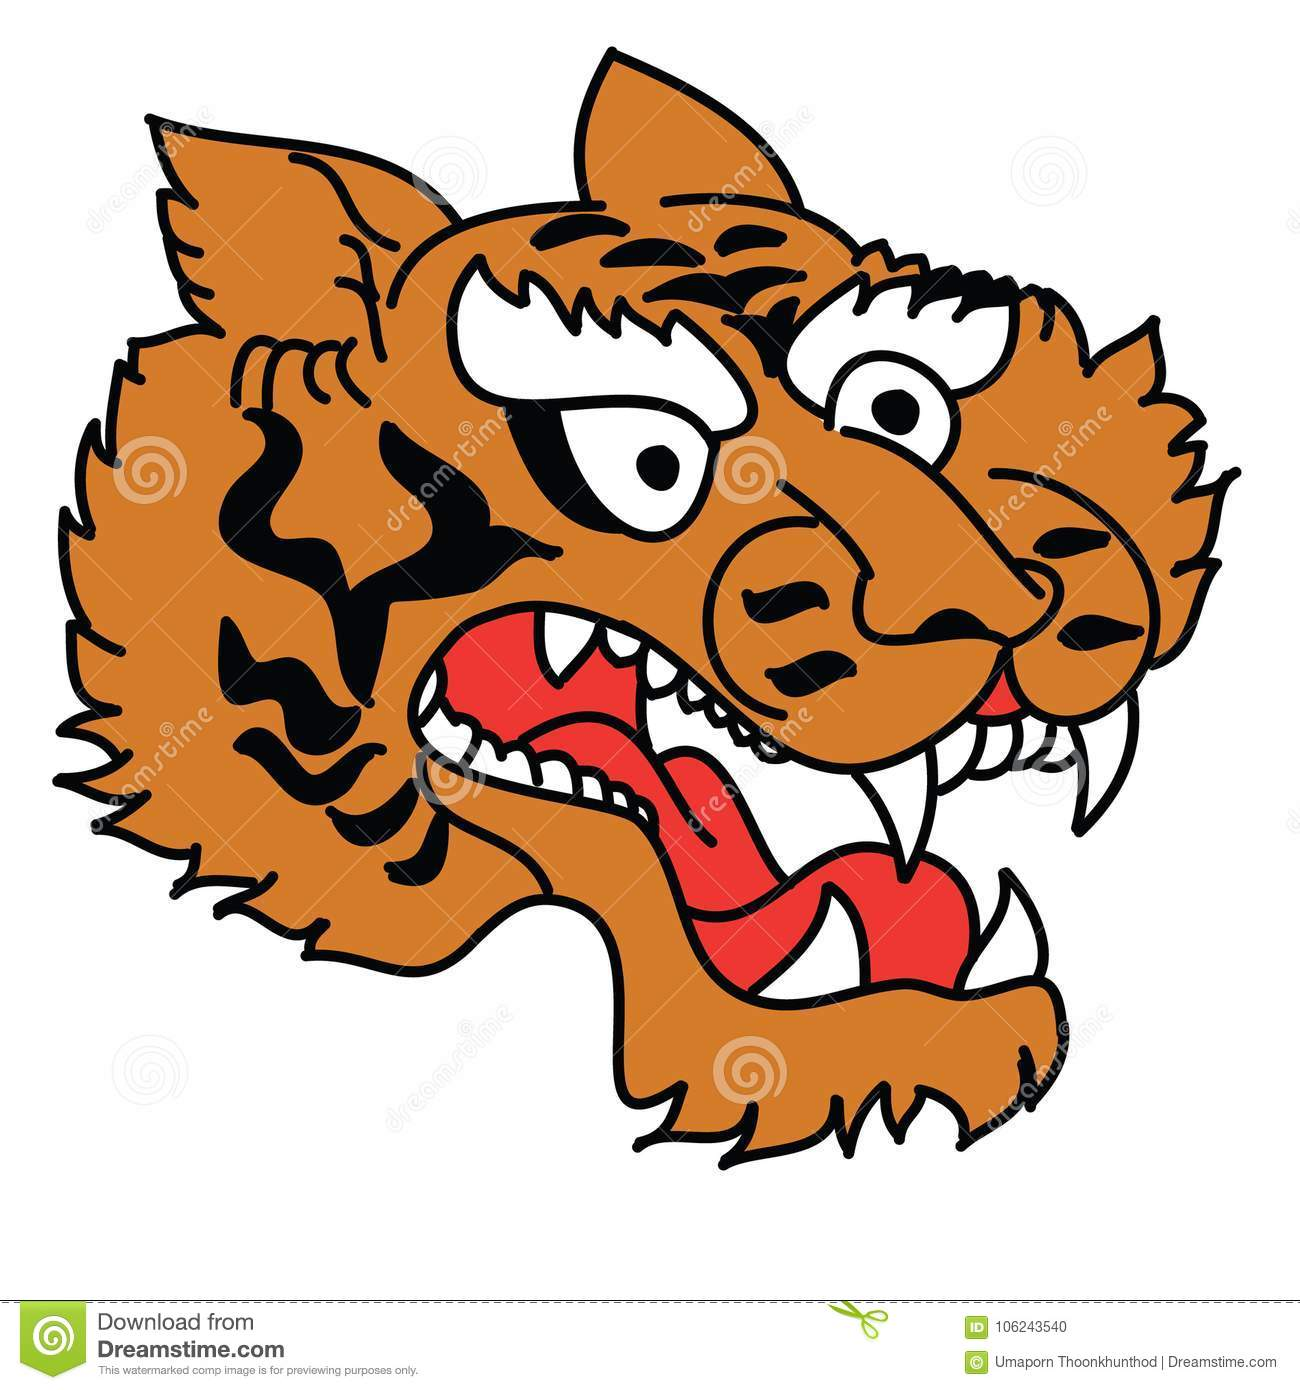 e68bf9baf039b Japanese Tiger head vector isolate on white background.traditional tattoo  tiger face.Japanese tiger head tattoo design vector for sticker.